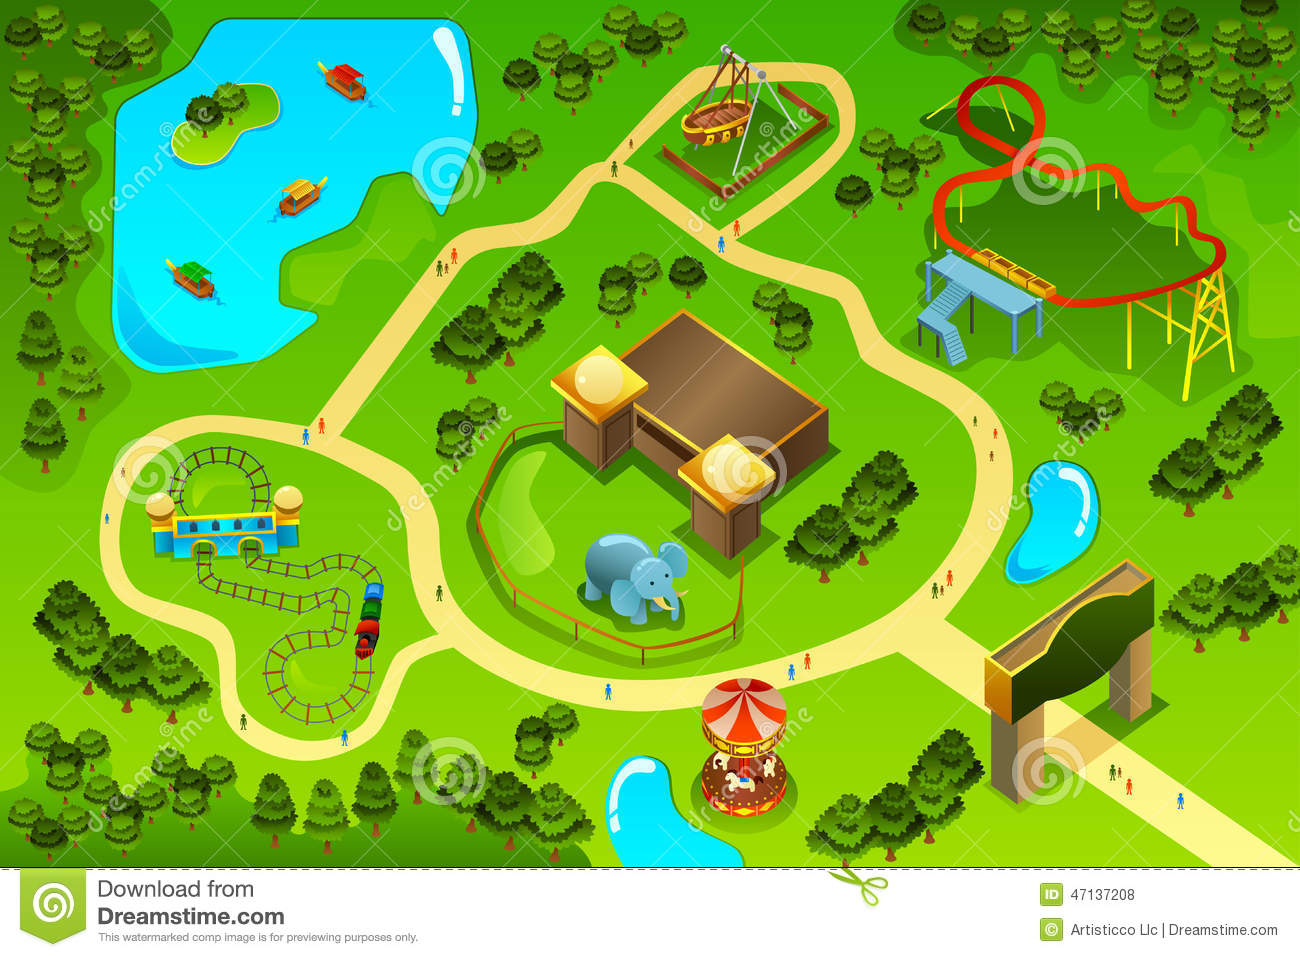 Map Of An Amusement Theme Park Stock Vector - Image: 47137208